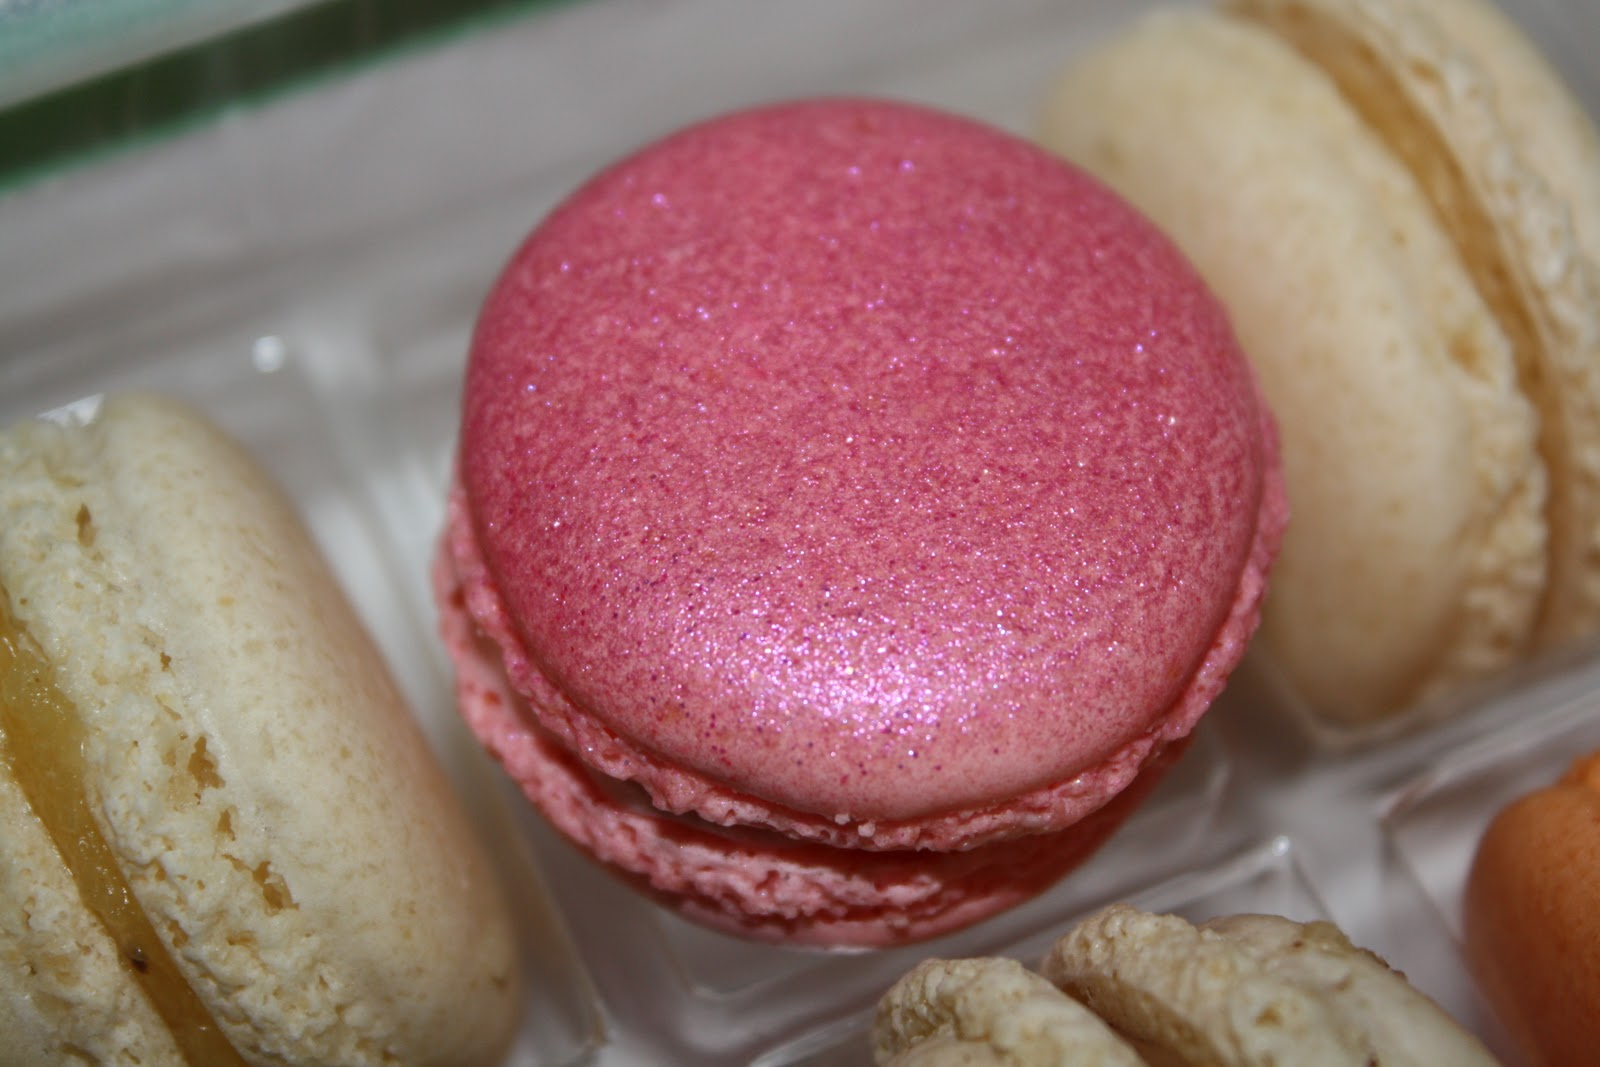 The strawberry macaroons even had edible pink glitter on top.